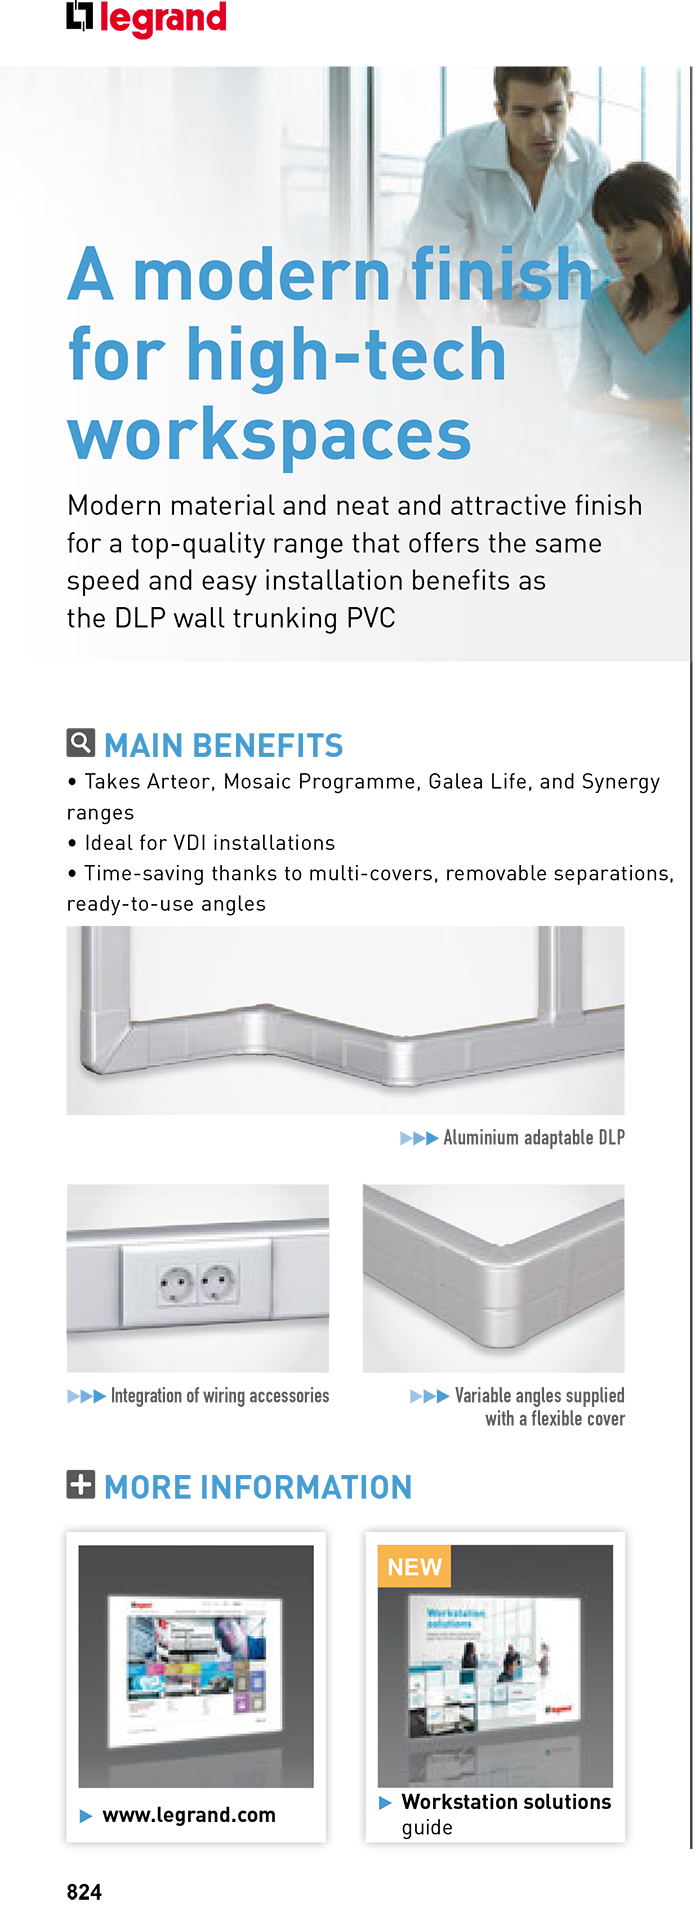 LEGRAND Trunking catalog-42.jpg